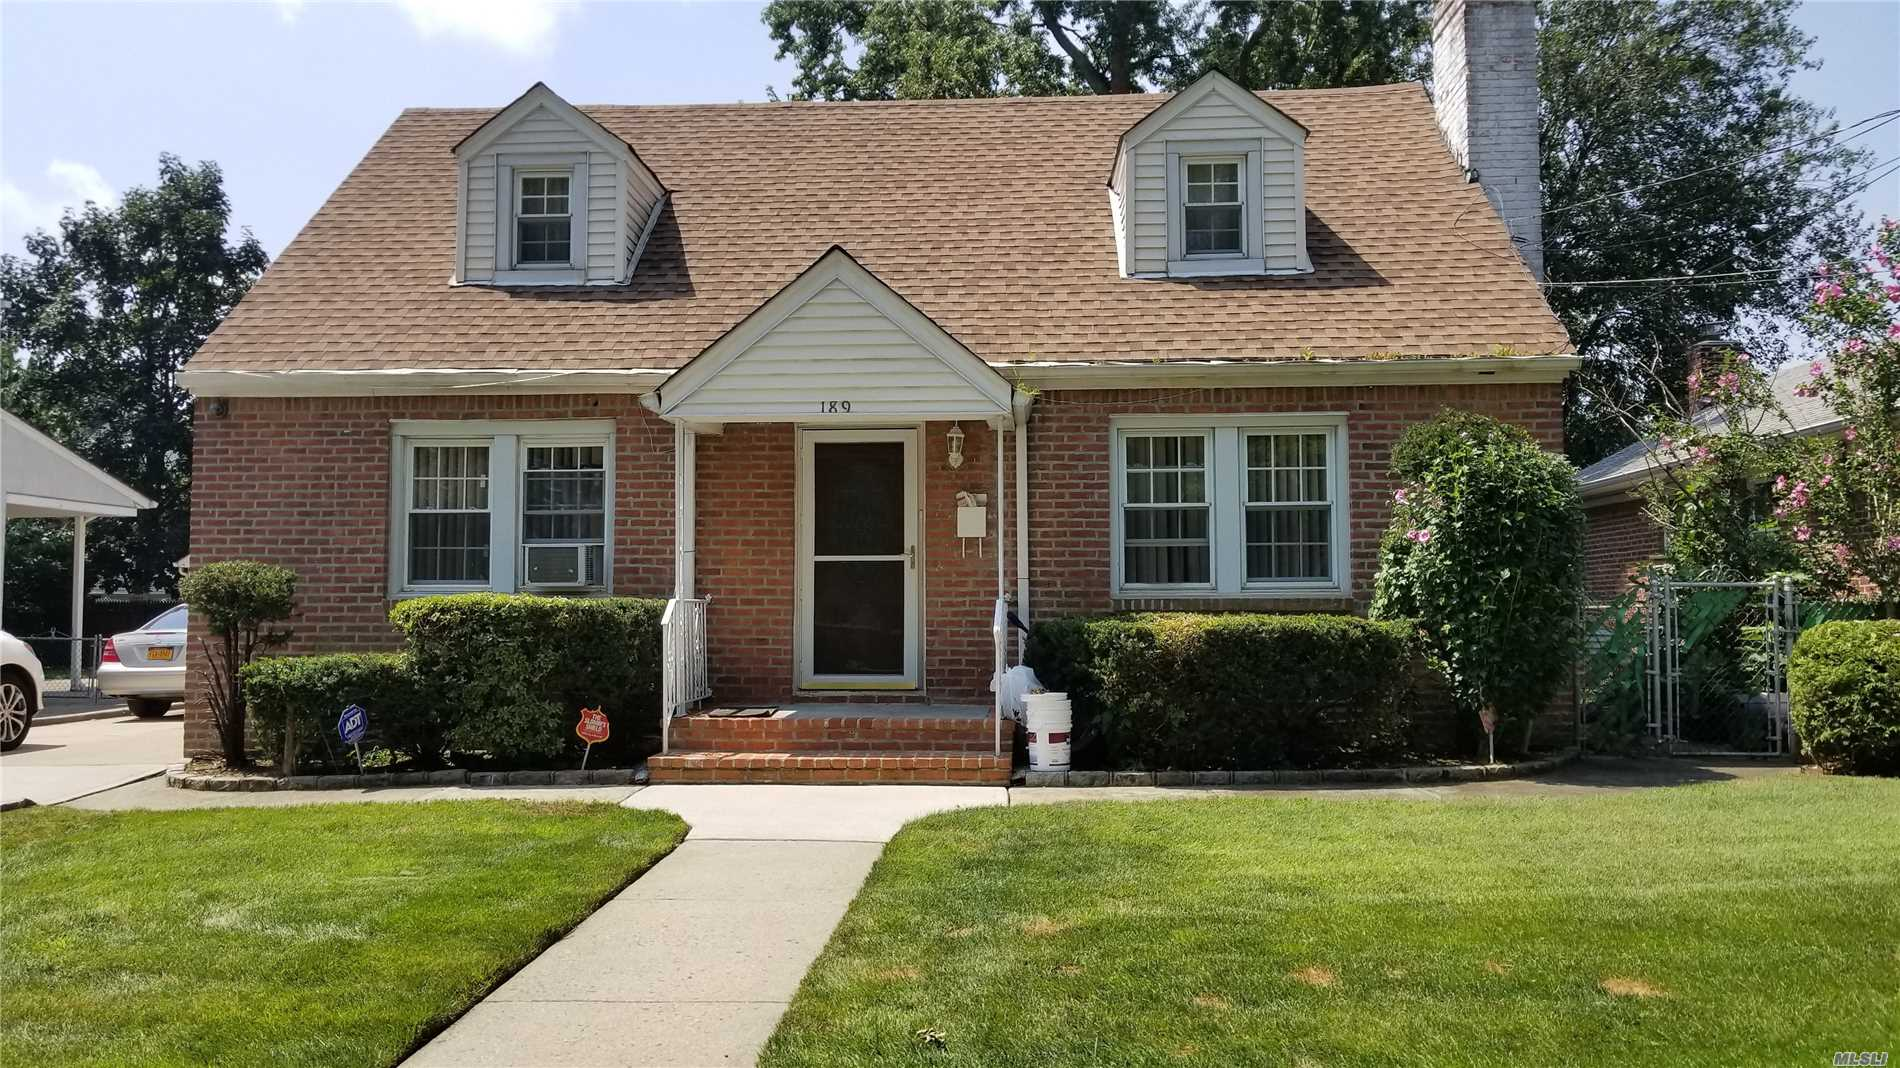 Completely Renovated And Extended Brick Wide-Line Cape. Basement And First Floor Extended. Outside Entrance To The Basement(Renovated Seven Years Ago). Near Chaminade, Hospital, Park, Library, Schools, Long Island Rail Road. Custom Granite And Stainless Steel Huge Eat-In Kitchen, Very Extended. A Must See To Appreciate.